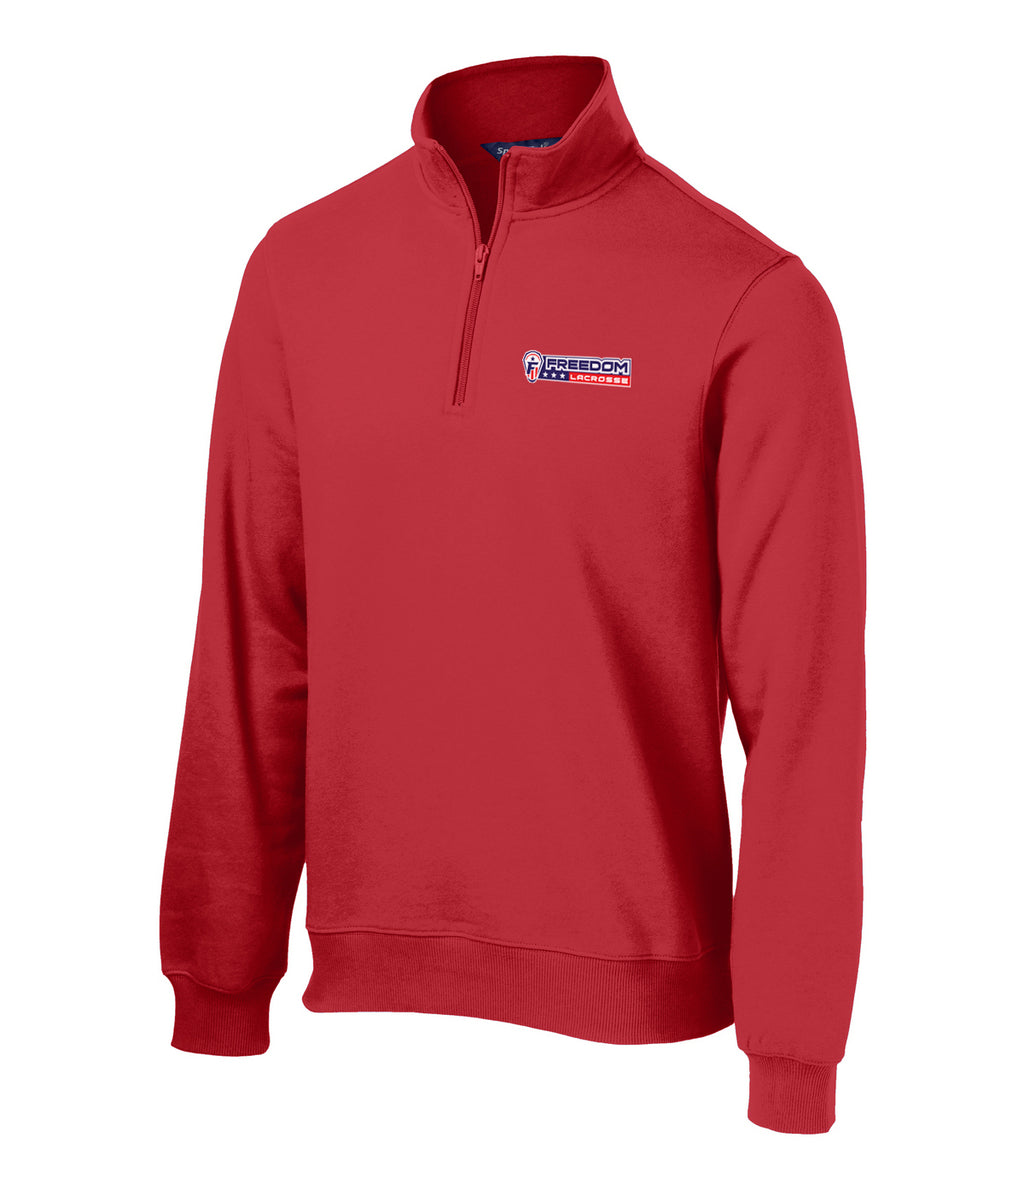 Freedom Lacrosse 1/4 Zip Fleece